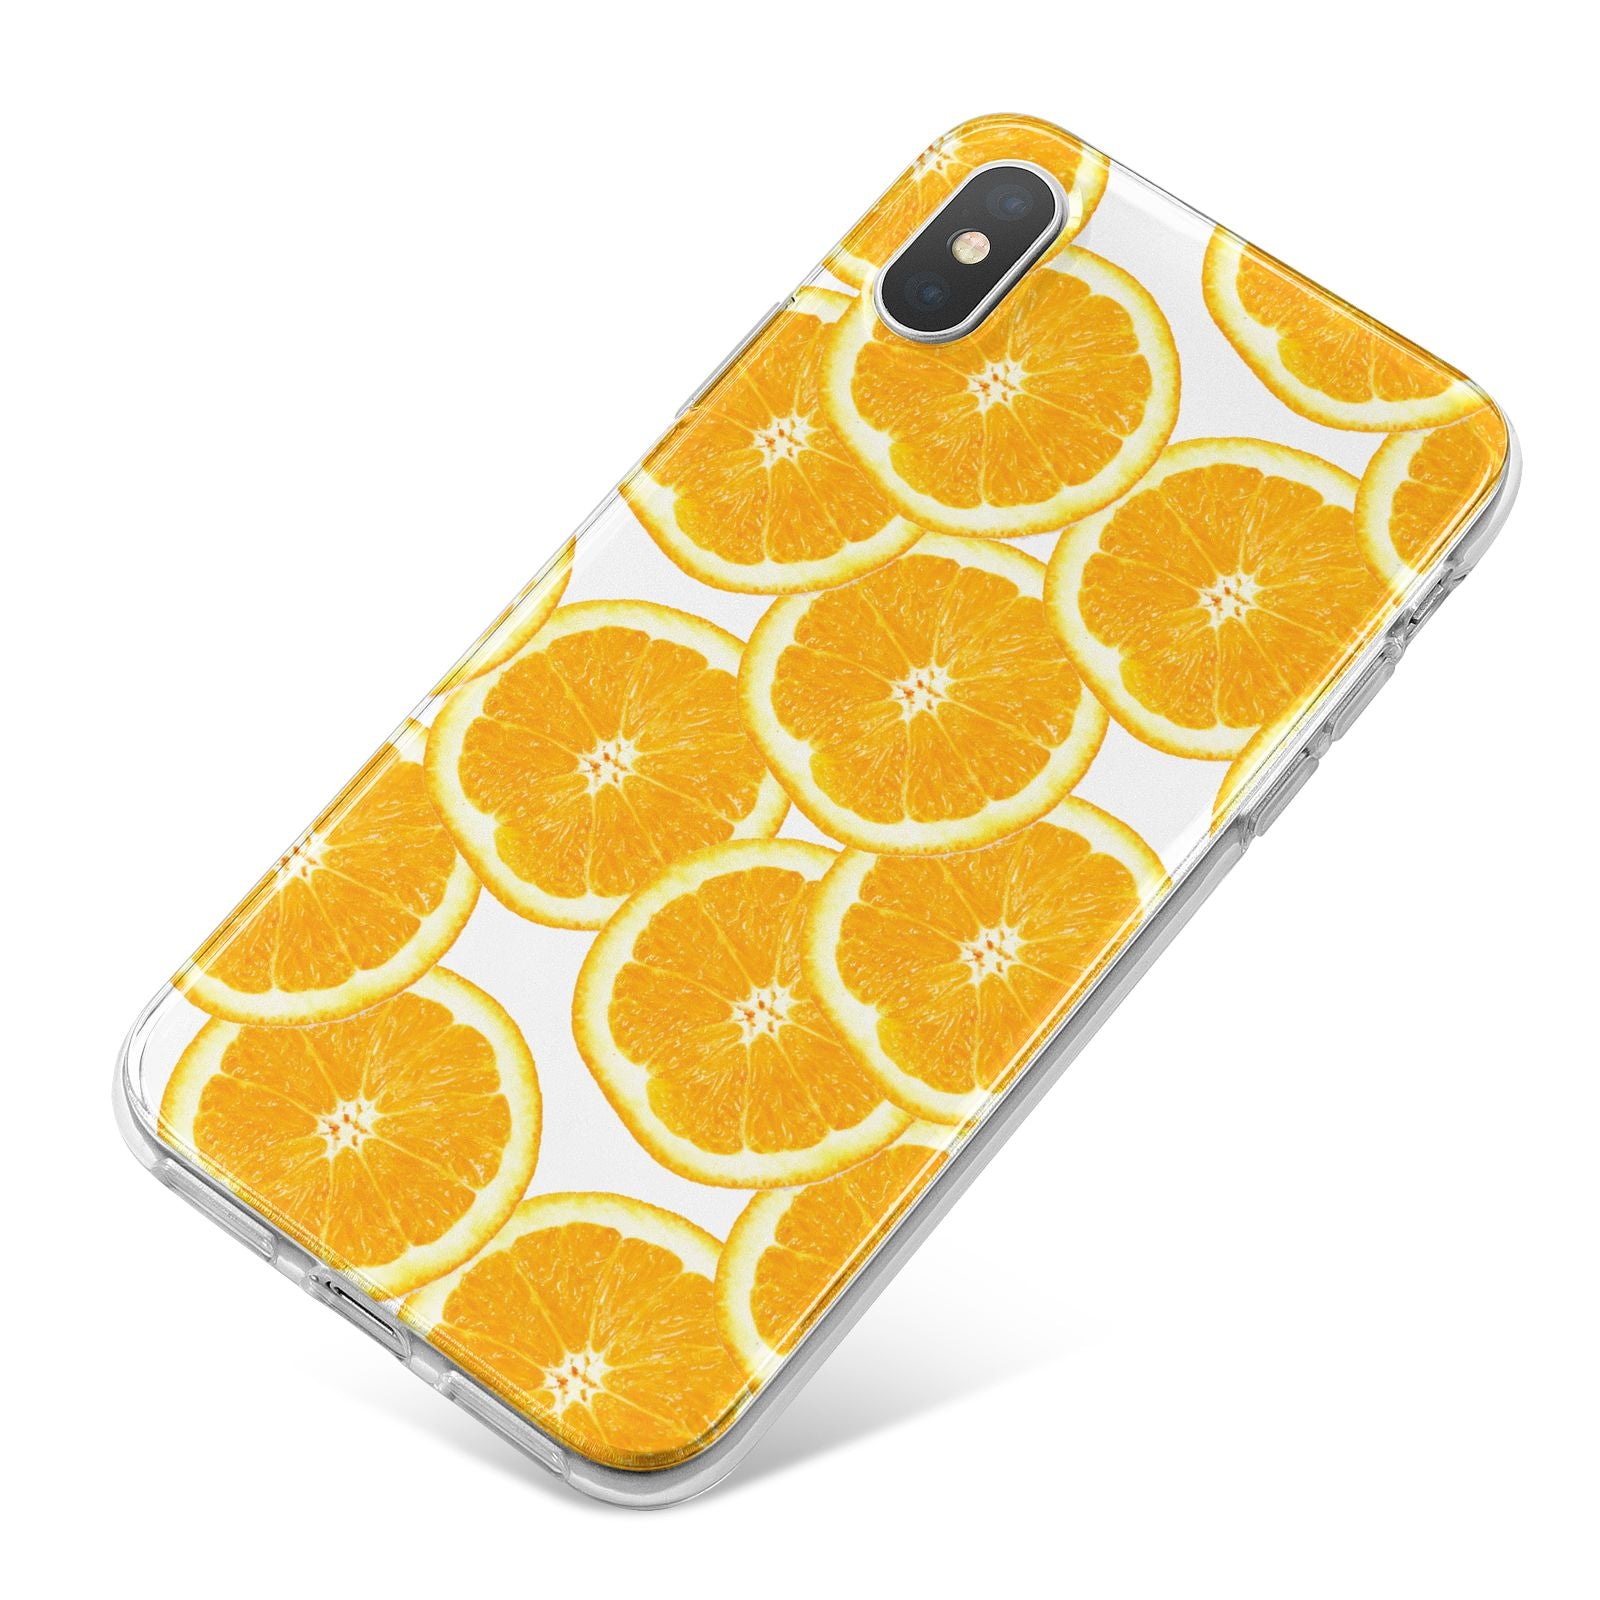 Orange Fruit Slices iPhone X Bumper Case on Silver iPhone